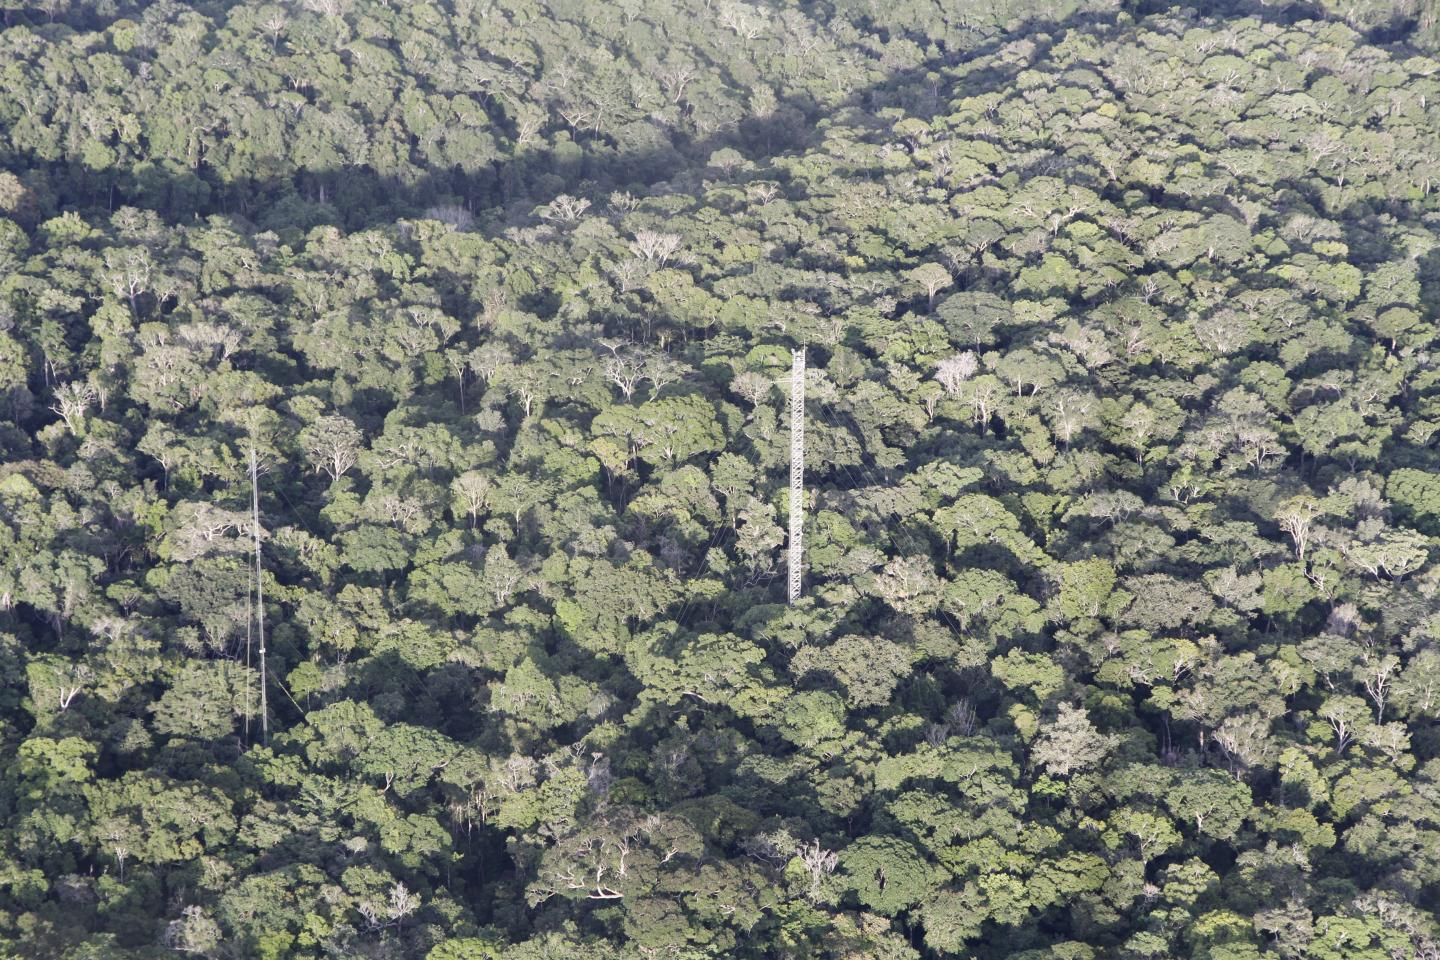 The Amazon Rainforest at the Amazon Tall Tower Observatory Site